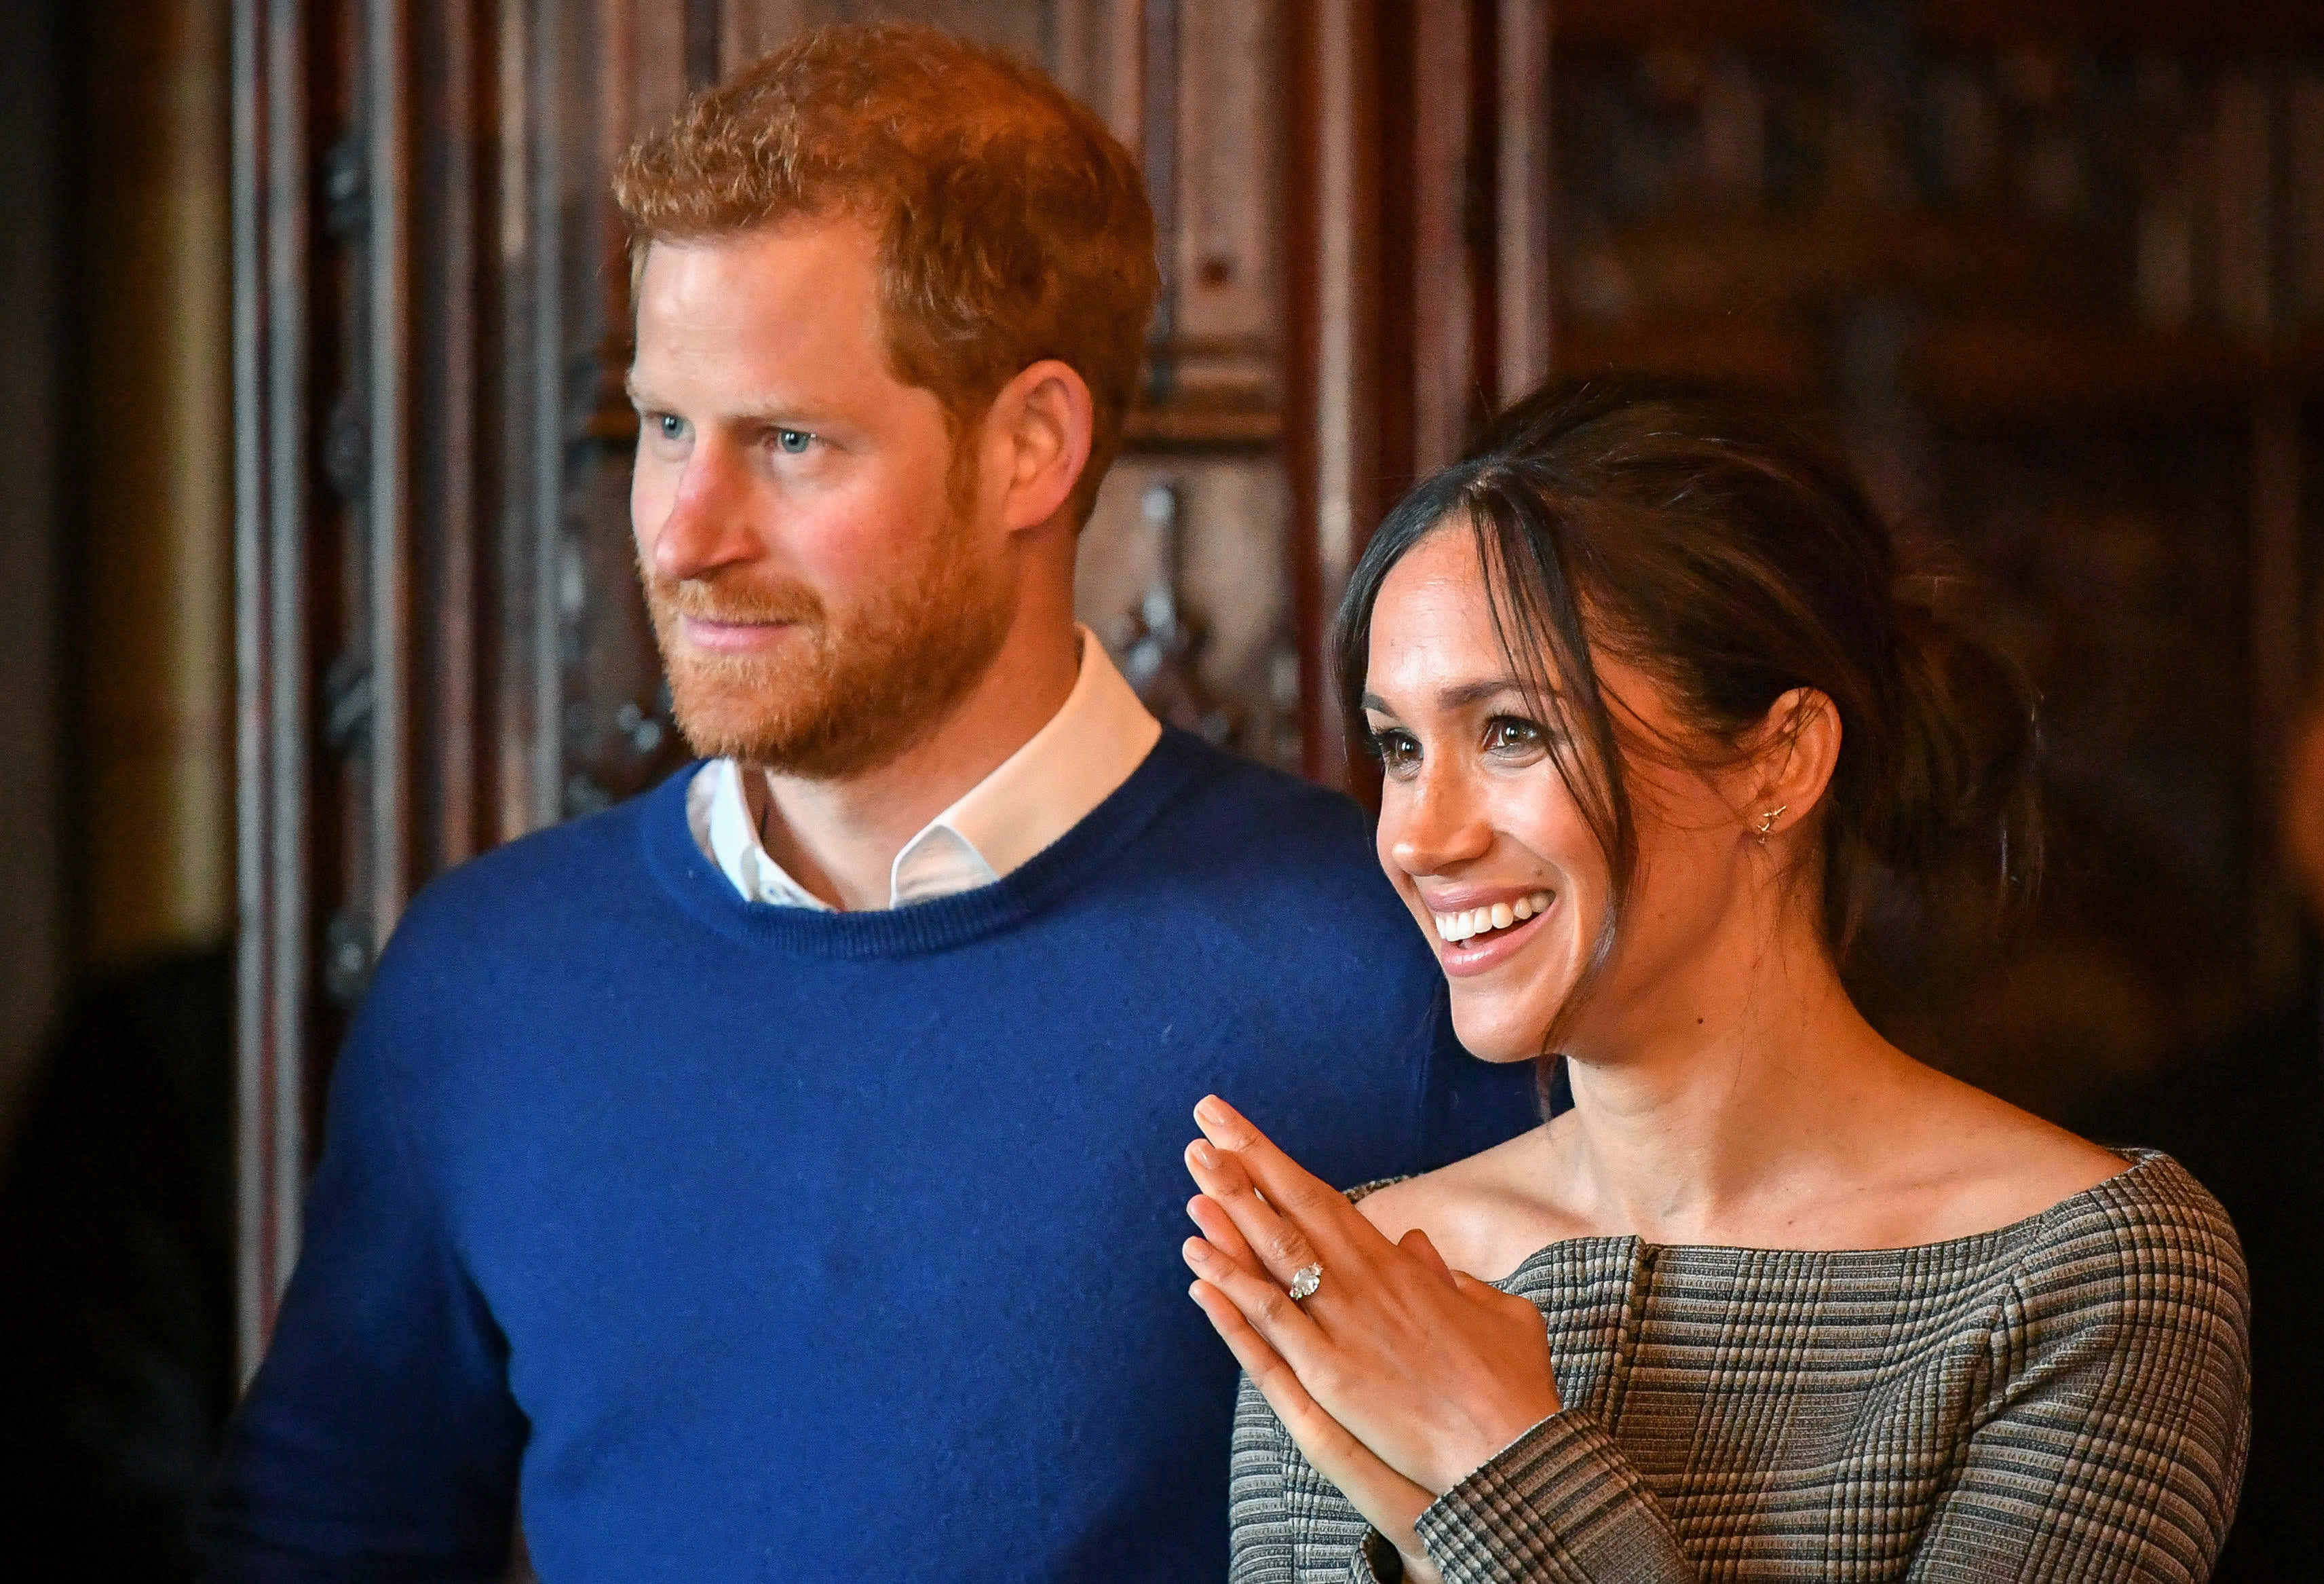 Meghan Markle\'s wedding dress may cost 3 times an average US salary